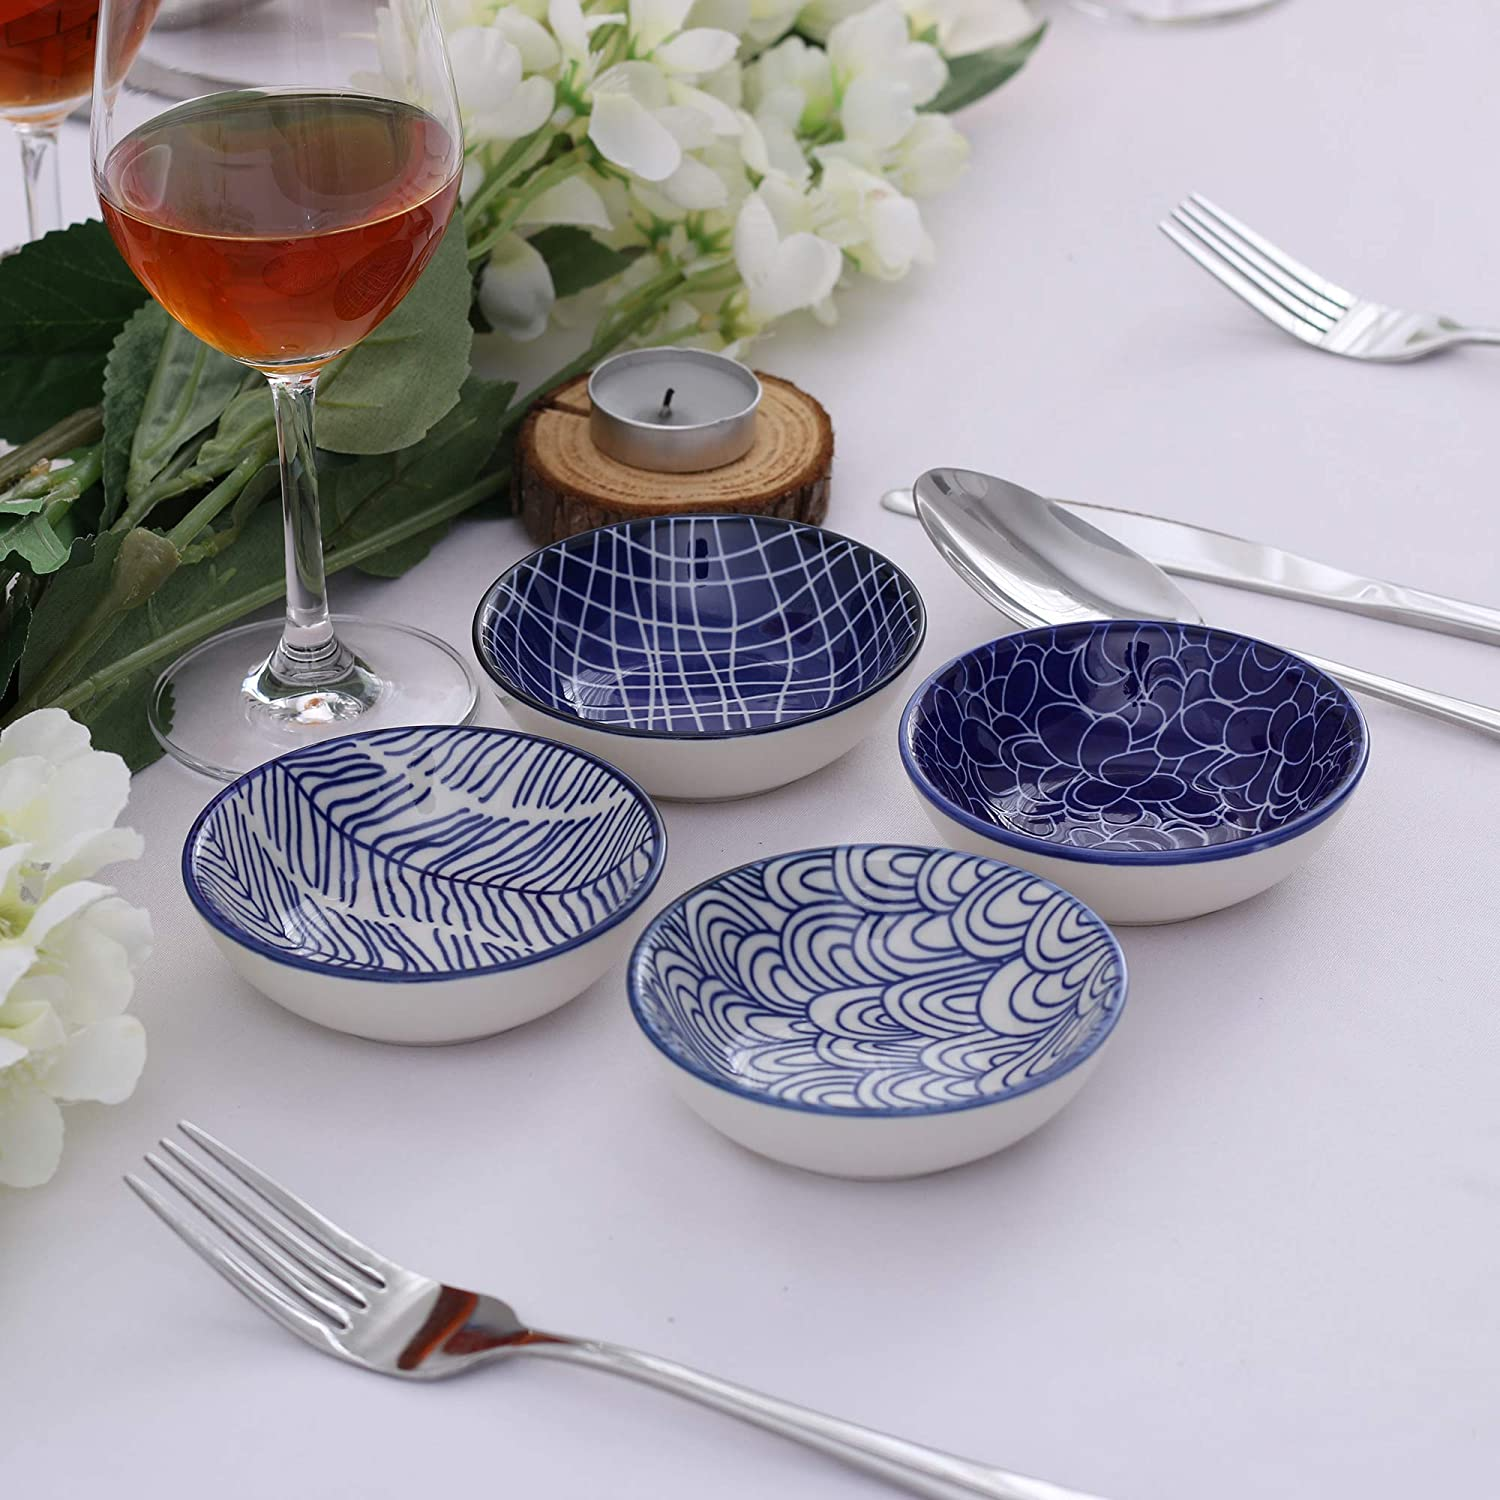 Vancasso 8 Pieces 3.5 Inches Patterned 4 Designs Japanese Style Blue and White Multi-Colour Porcelain Appetiser Dishes Set 8.8 * 8.8 * 2.8cm